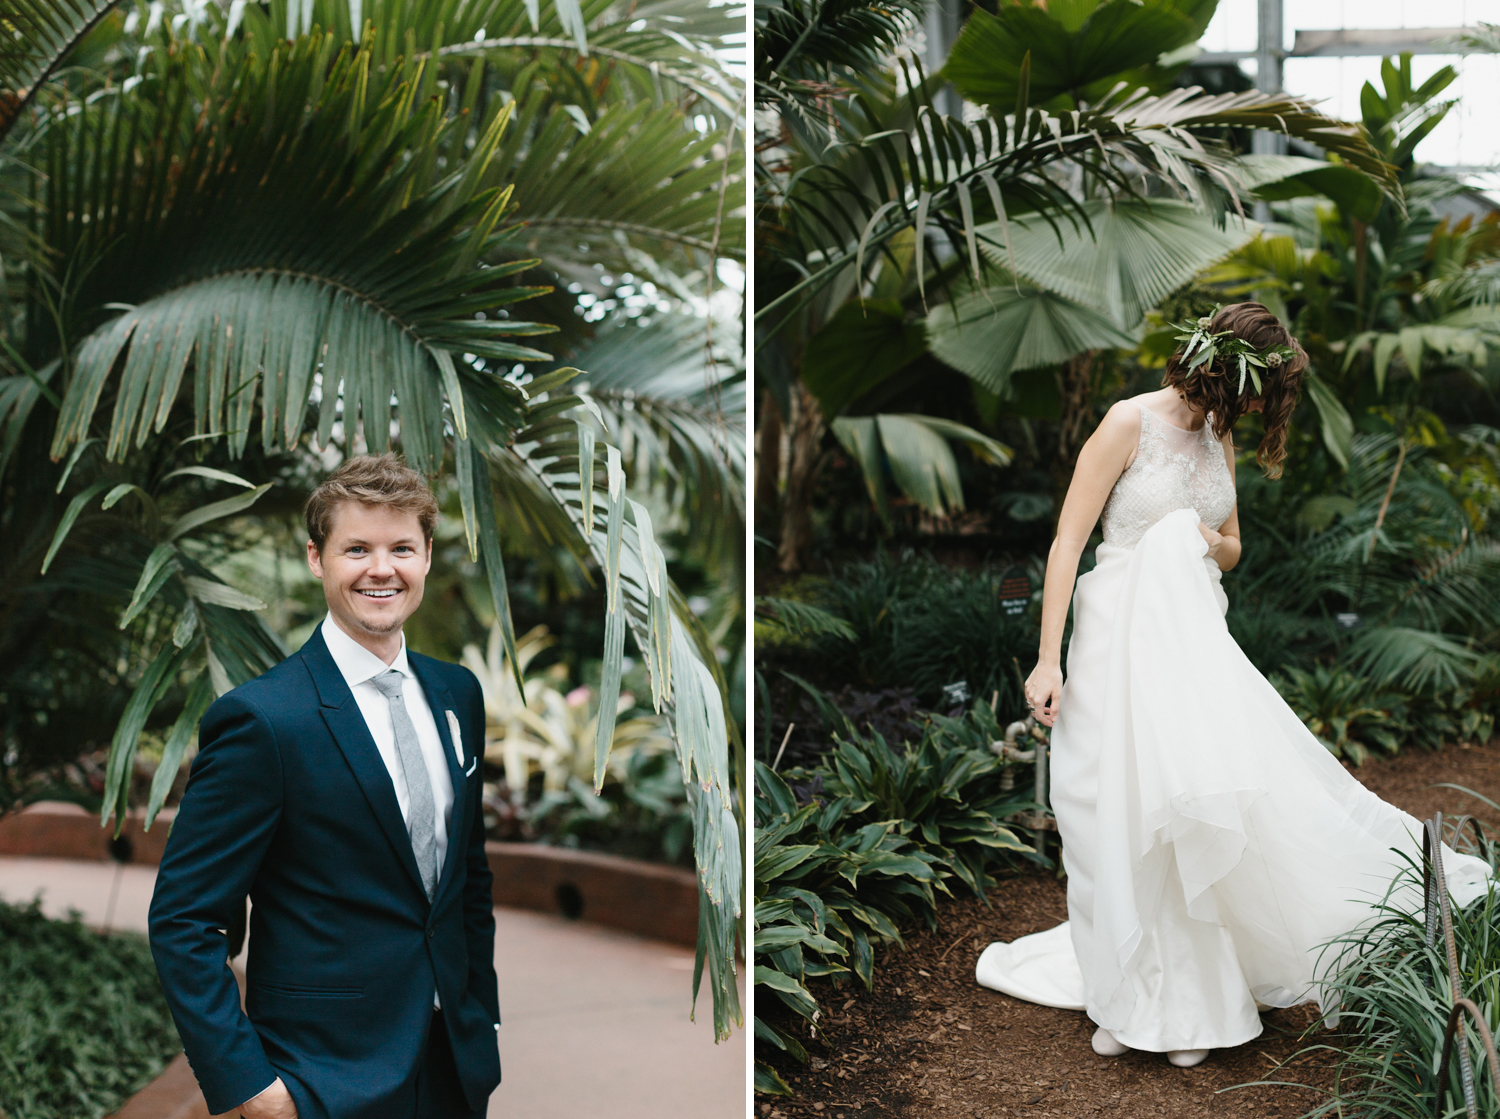 Chicago Garfield Park Conservatory Wedding by Northern Michigan Photographer Mae Stier-009.jpg